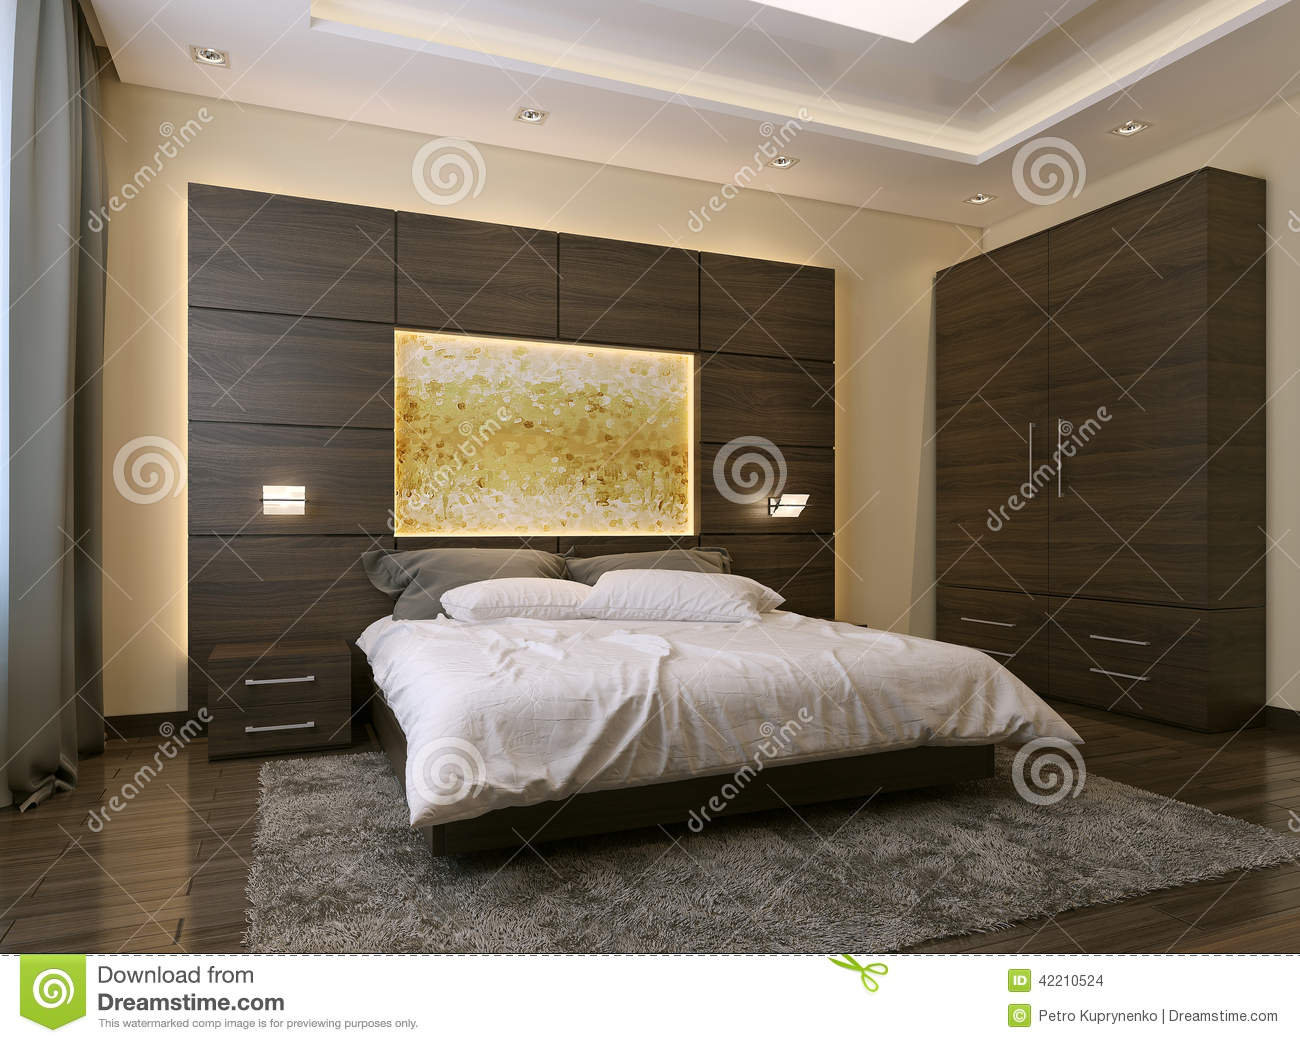 Bedroom Modern Style Stock Illustration - Image: 42210524